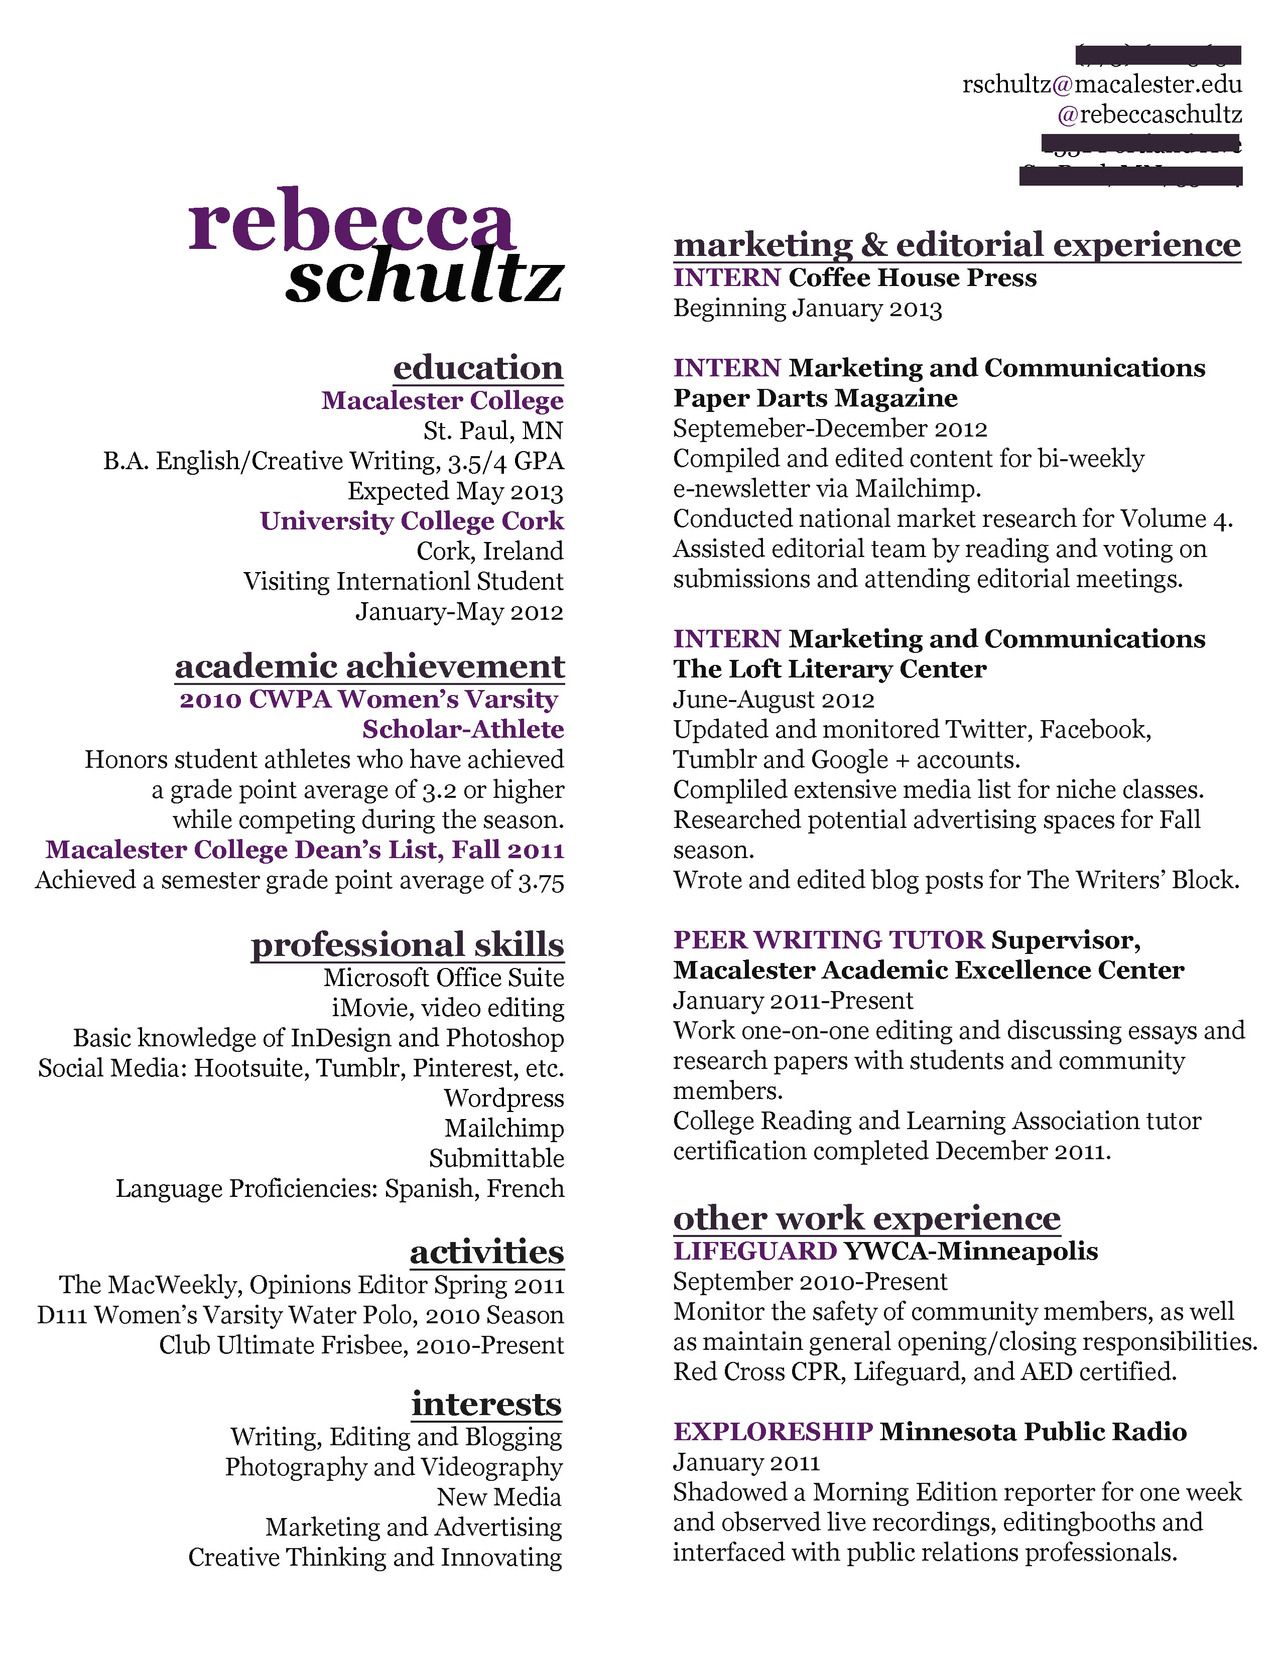 Creative resume, writer resume, entry level resume, marketing resume ...